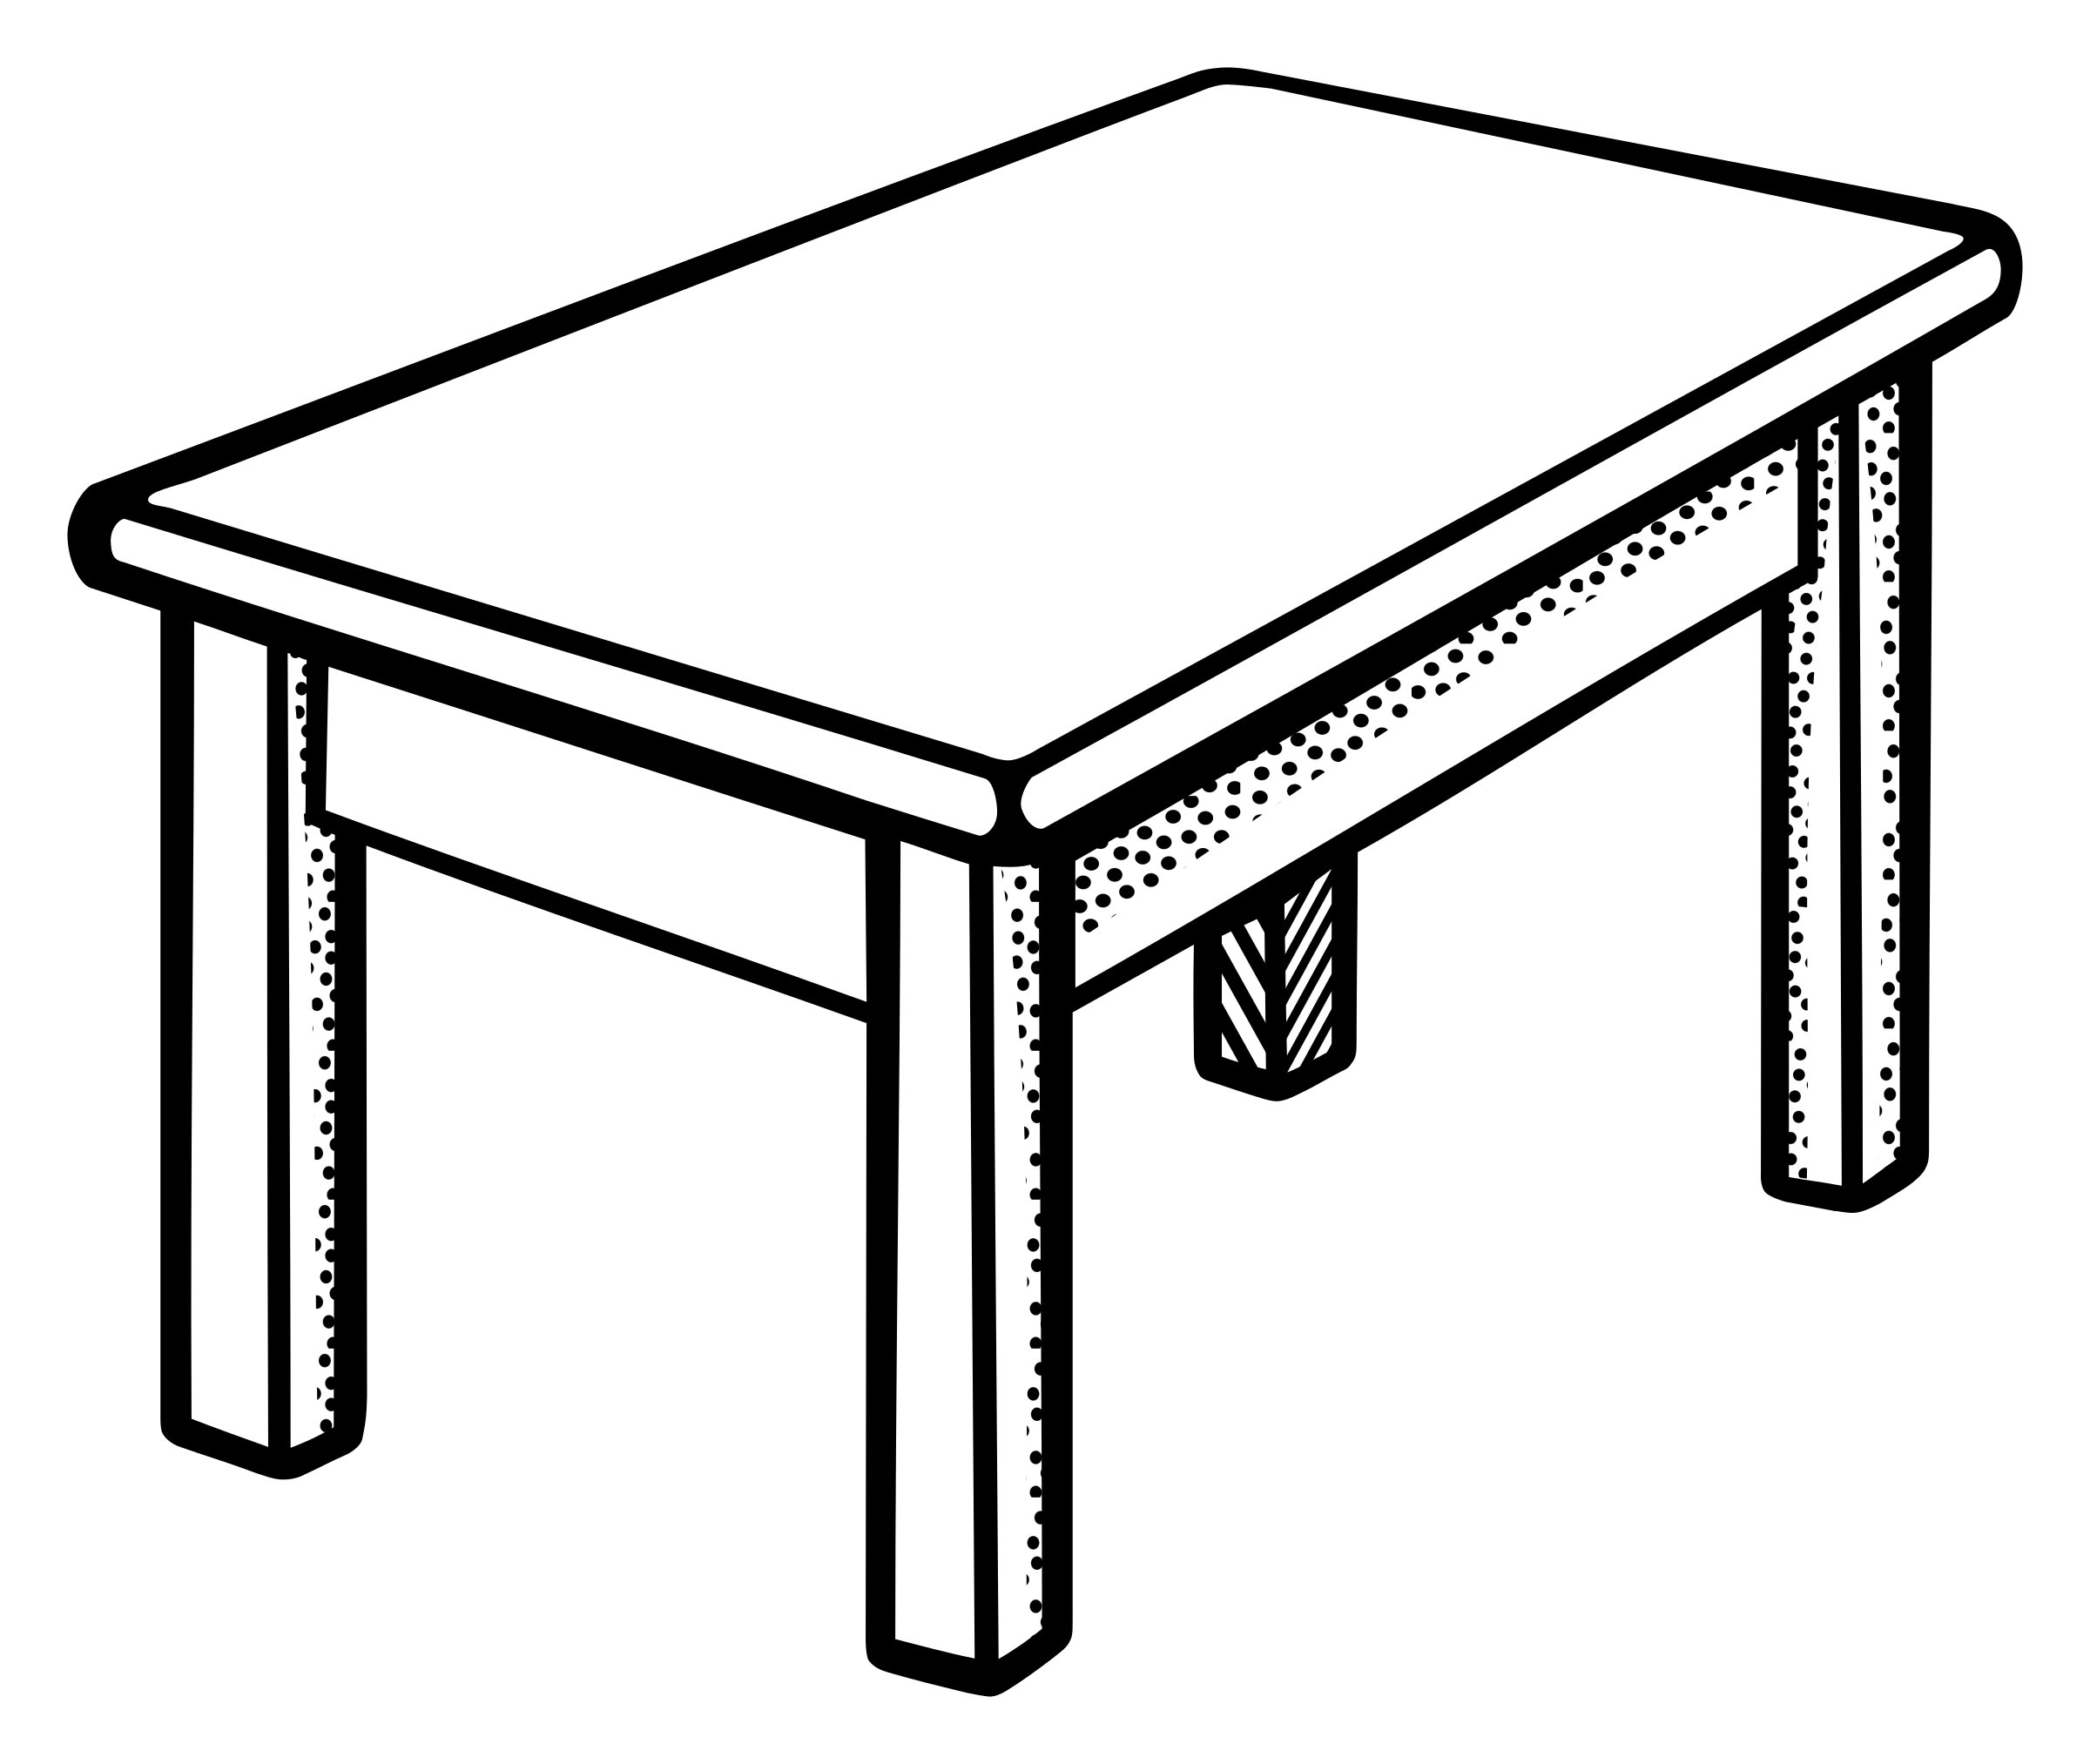 Table clipart #16, Download drawings